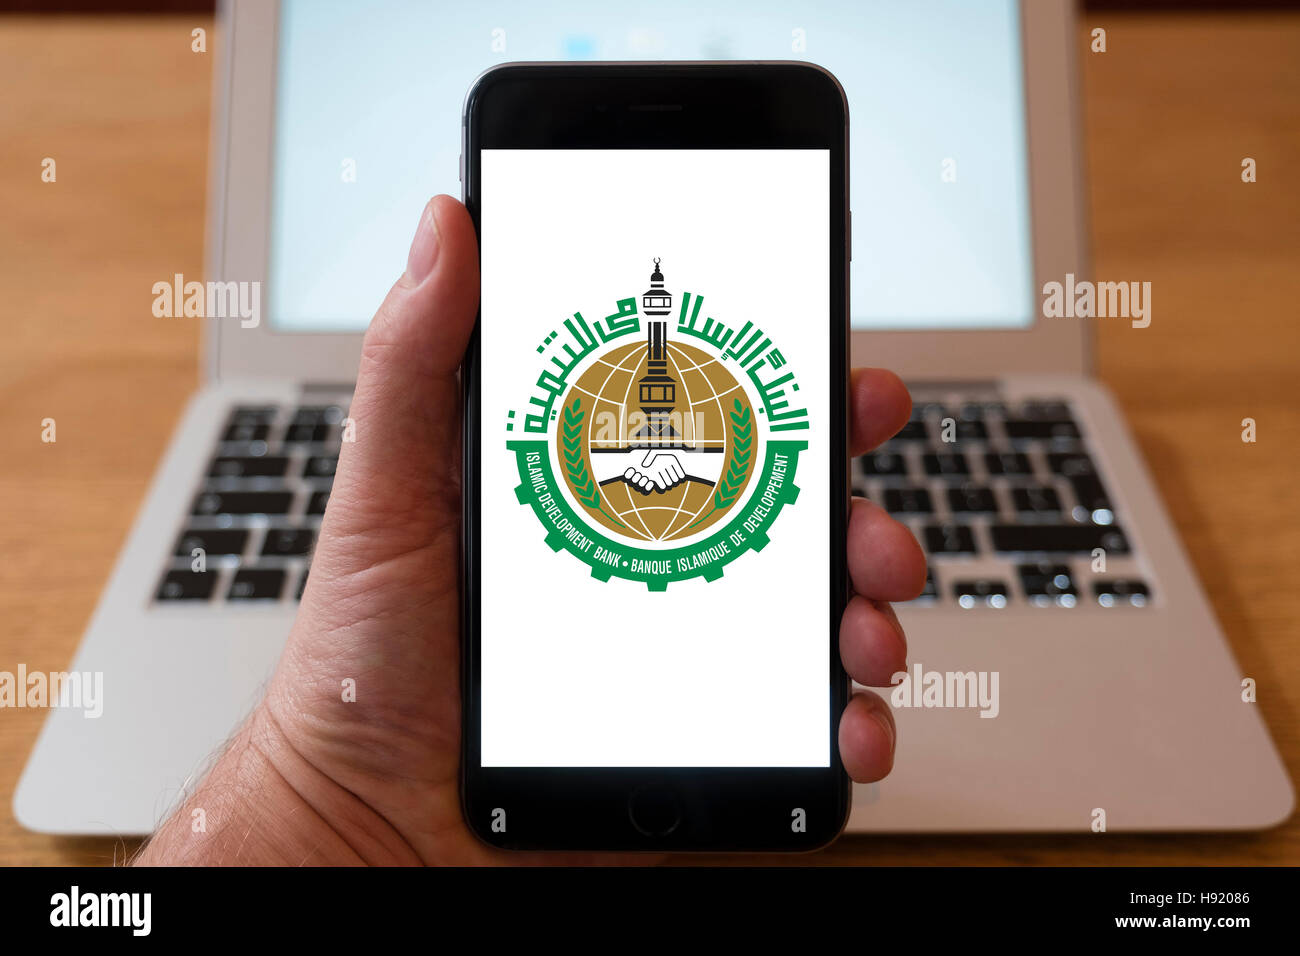 Using iPhone smart phone to display website logo of the